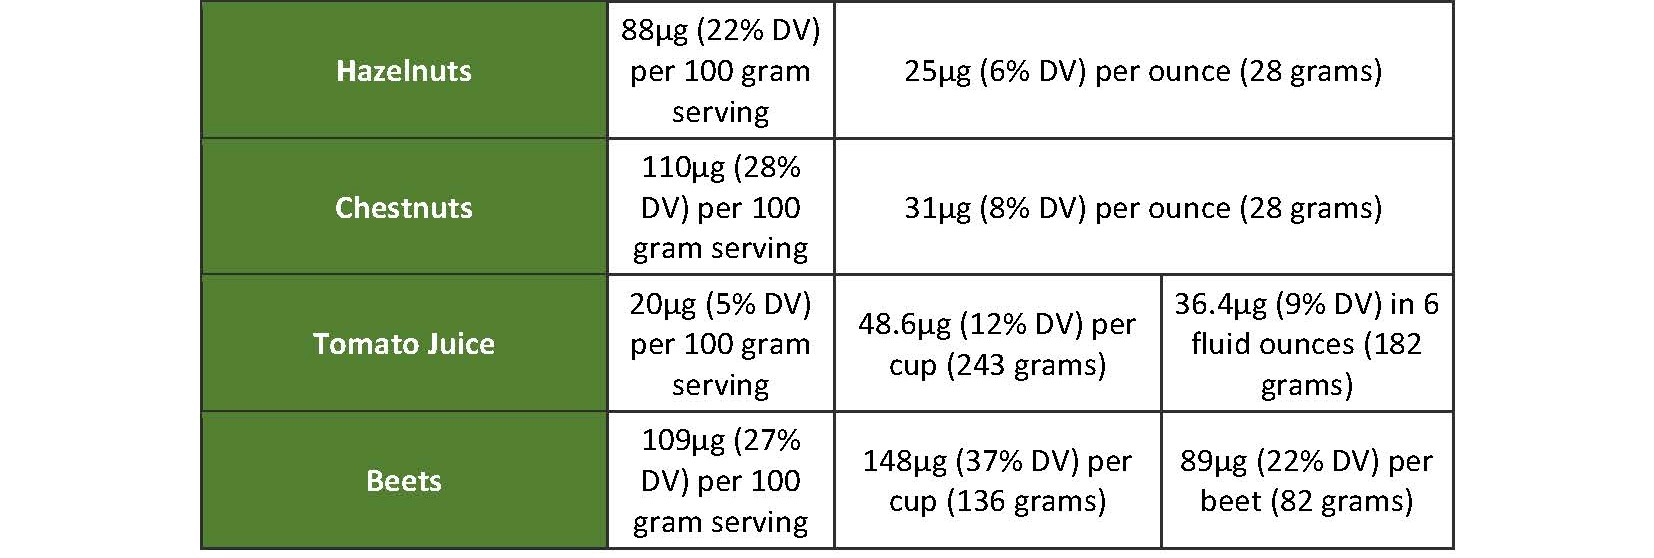 Other Vitamin B9-Rich Foods Table 1 - page 2